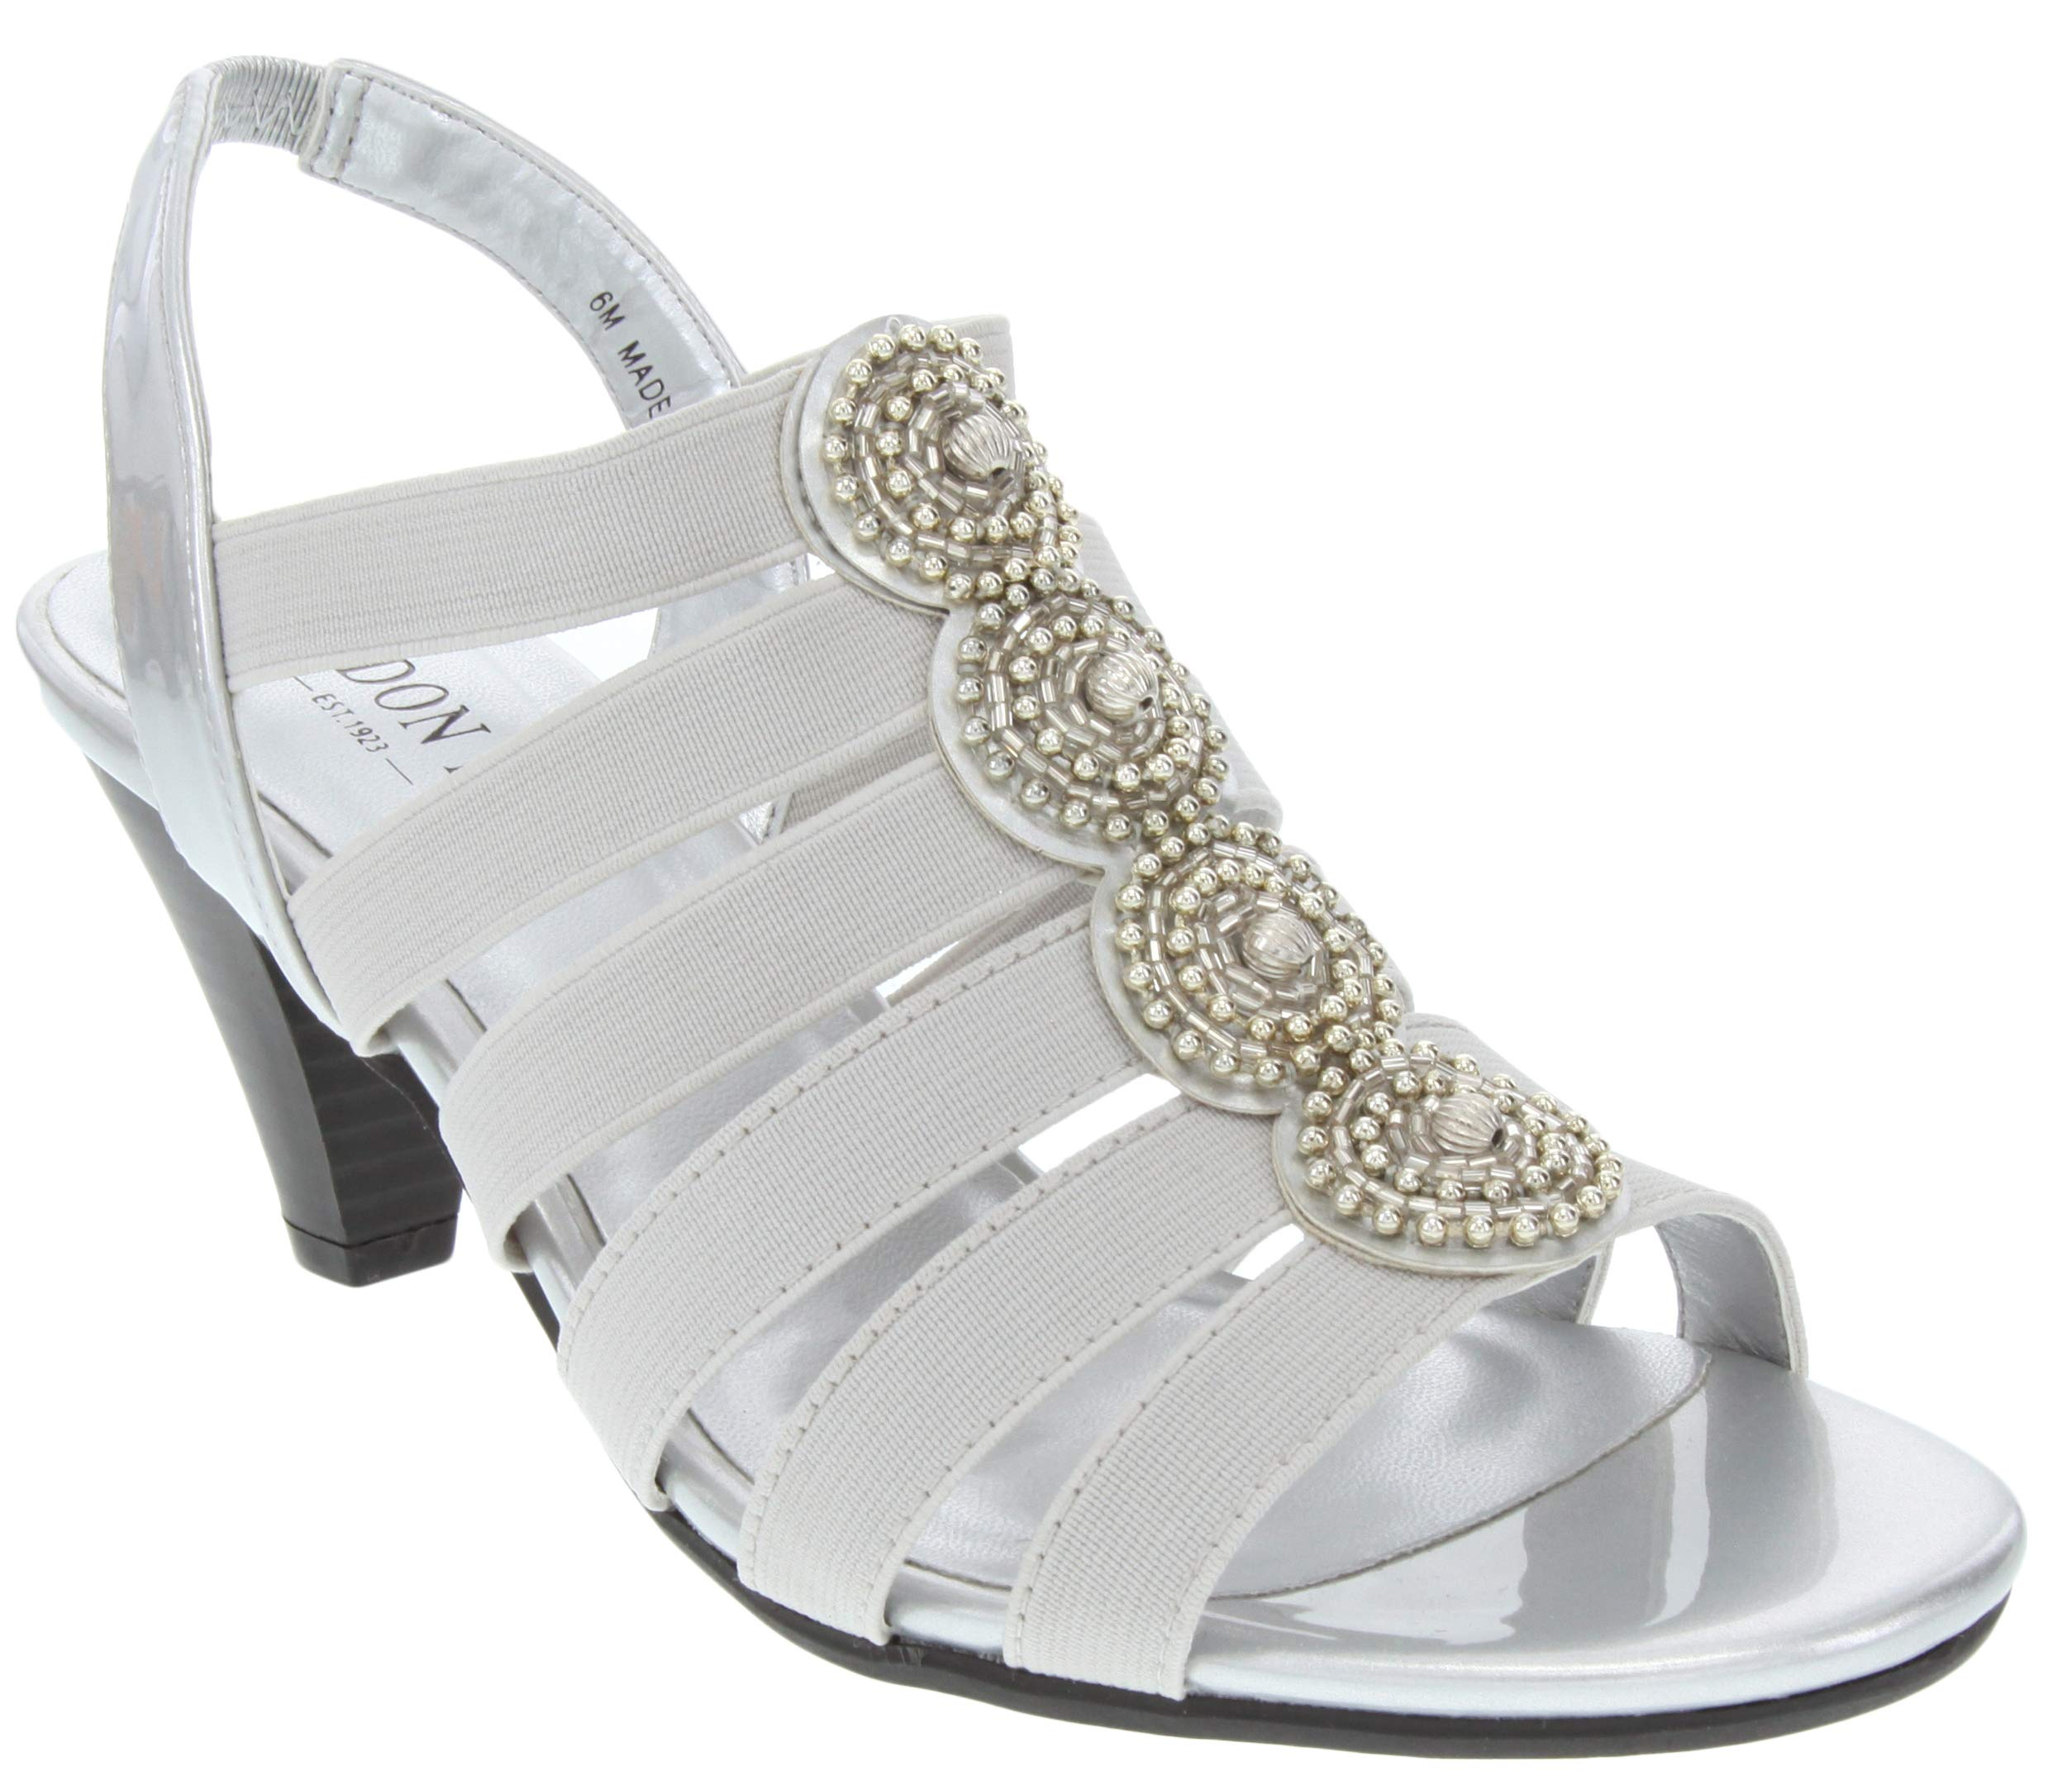 London Fog Nanci Dress Sandals Silver 9.5 M US by London Fog